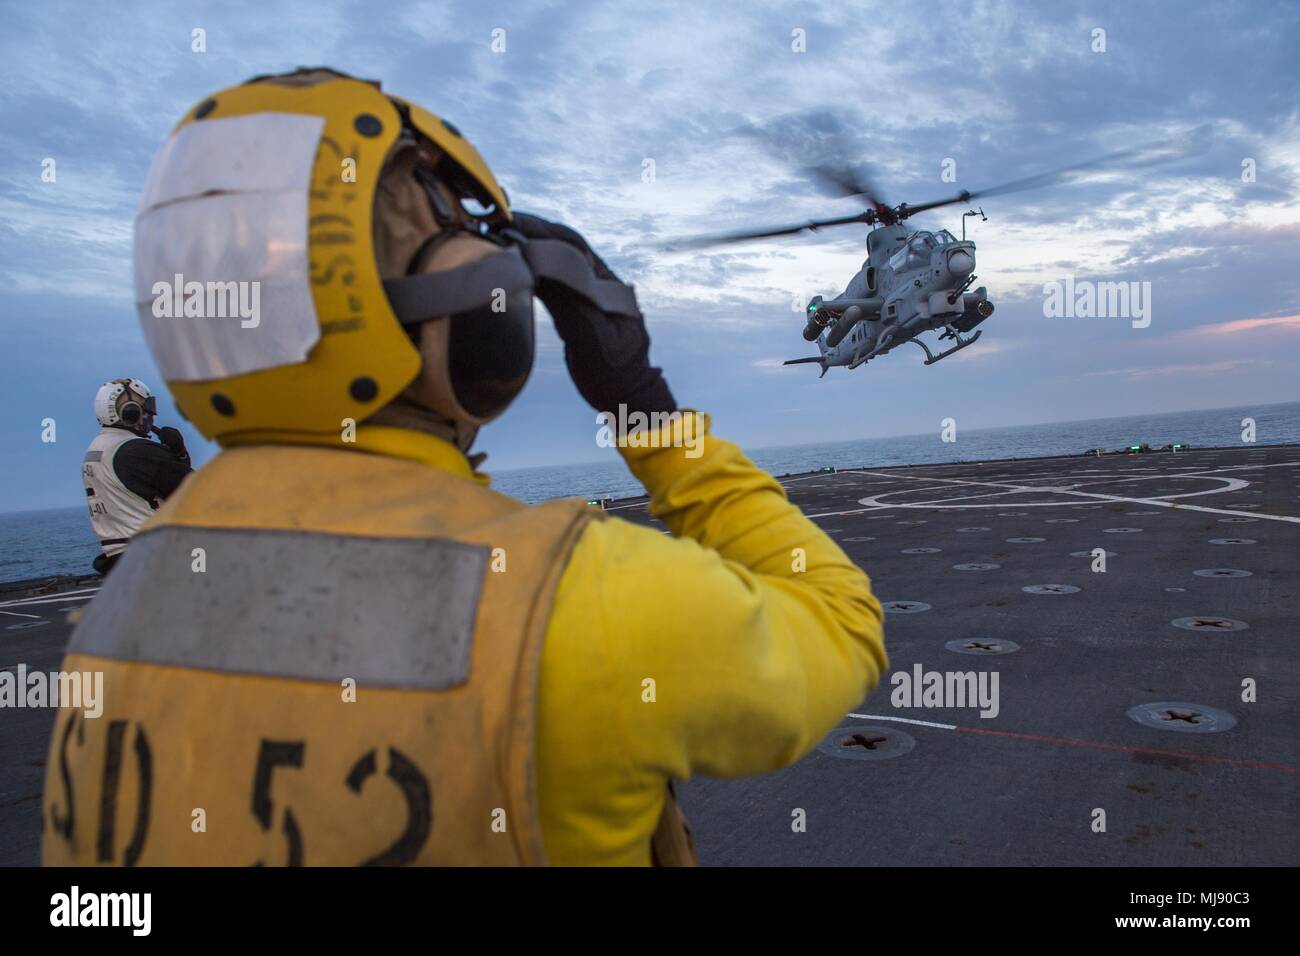 180421-N-VR594-0192 PACIFIC OCEAN (April 21, 2018) An AH-1Z Cobra assigned to Marine Light Attack Helicopter Squadron (HMLA) 267 conducts deck landing qualifications on the flight deck of the Harpers Ferry-class amphibious dock landing ship USS Pearl Harbor (LSD 52). Pearl Harbor is currently underway off the coast of Southern California conducting routine training operations. (U.S. Navy photo by Mass Communication Specialist 3rd Class Kelsey J. Hockenberger/Released) Stock Photo